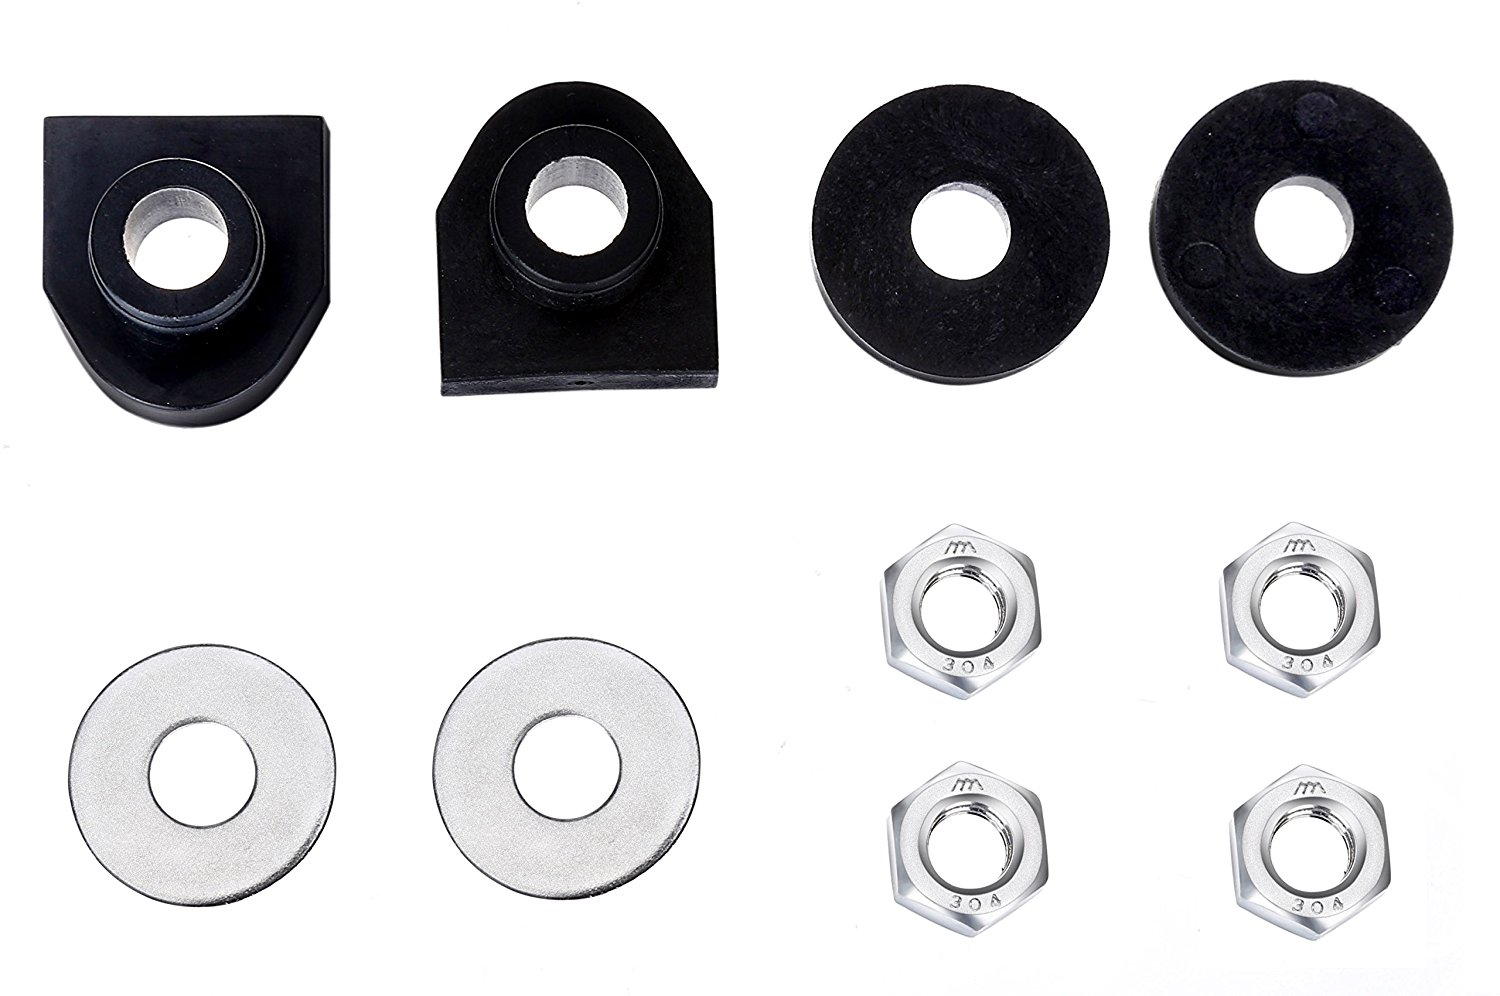 10L0L Fits on Club Car 1021871-01 Electric 2004-up Precedent Advanced DC Motor Terminal Hardware Bushing Kit